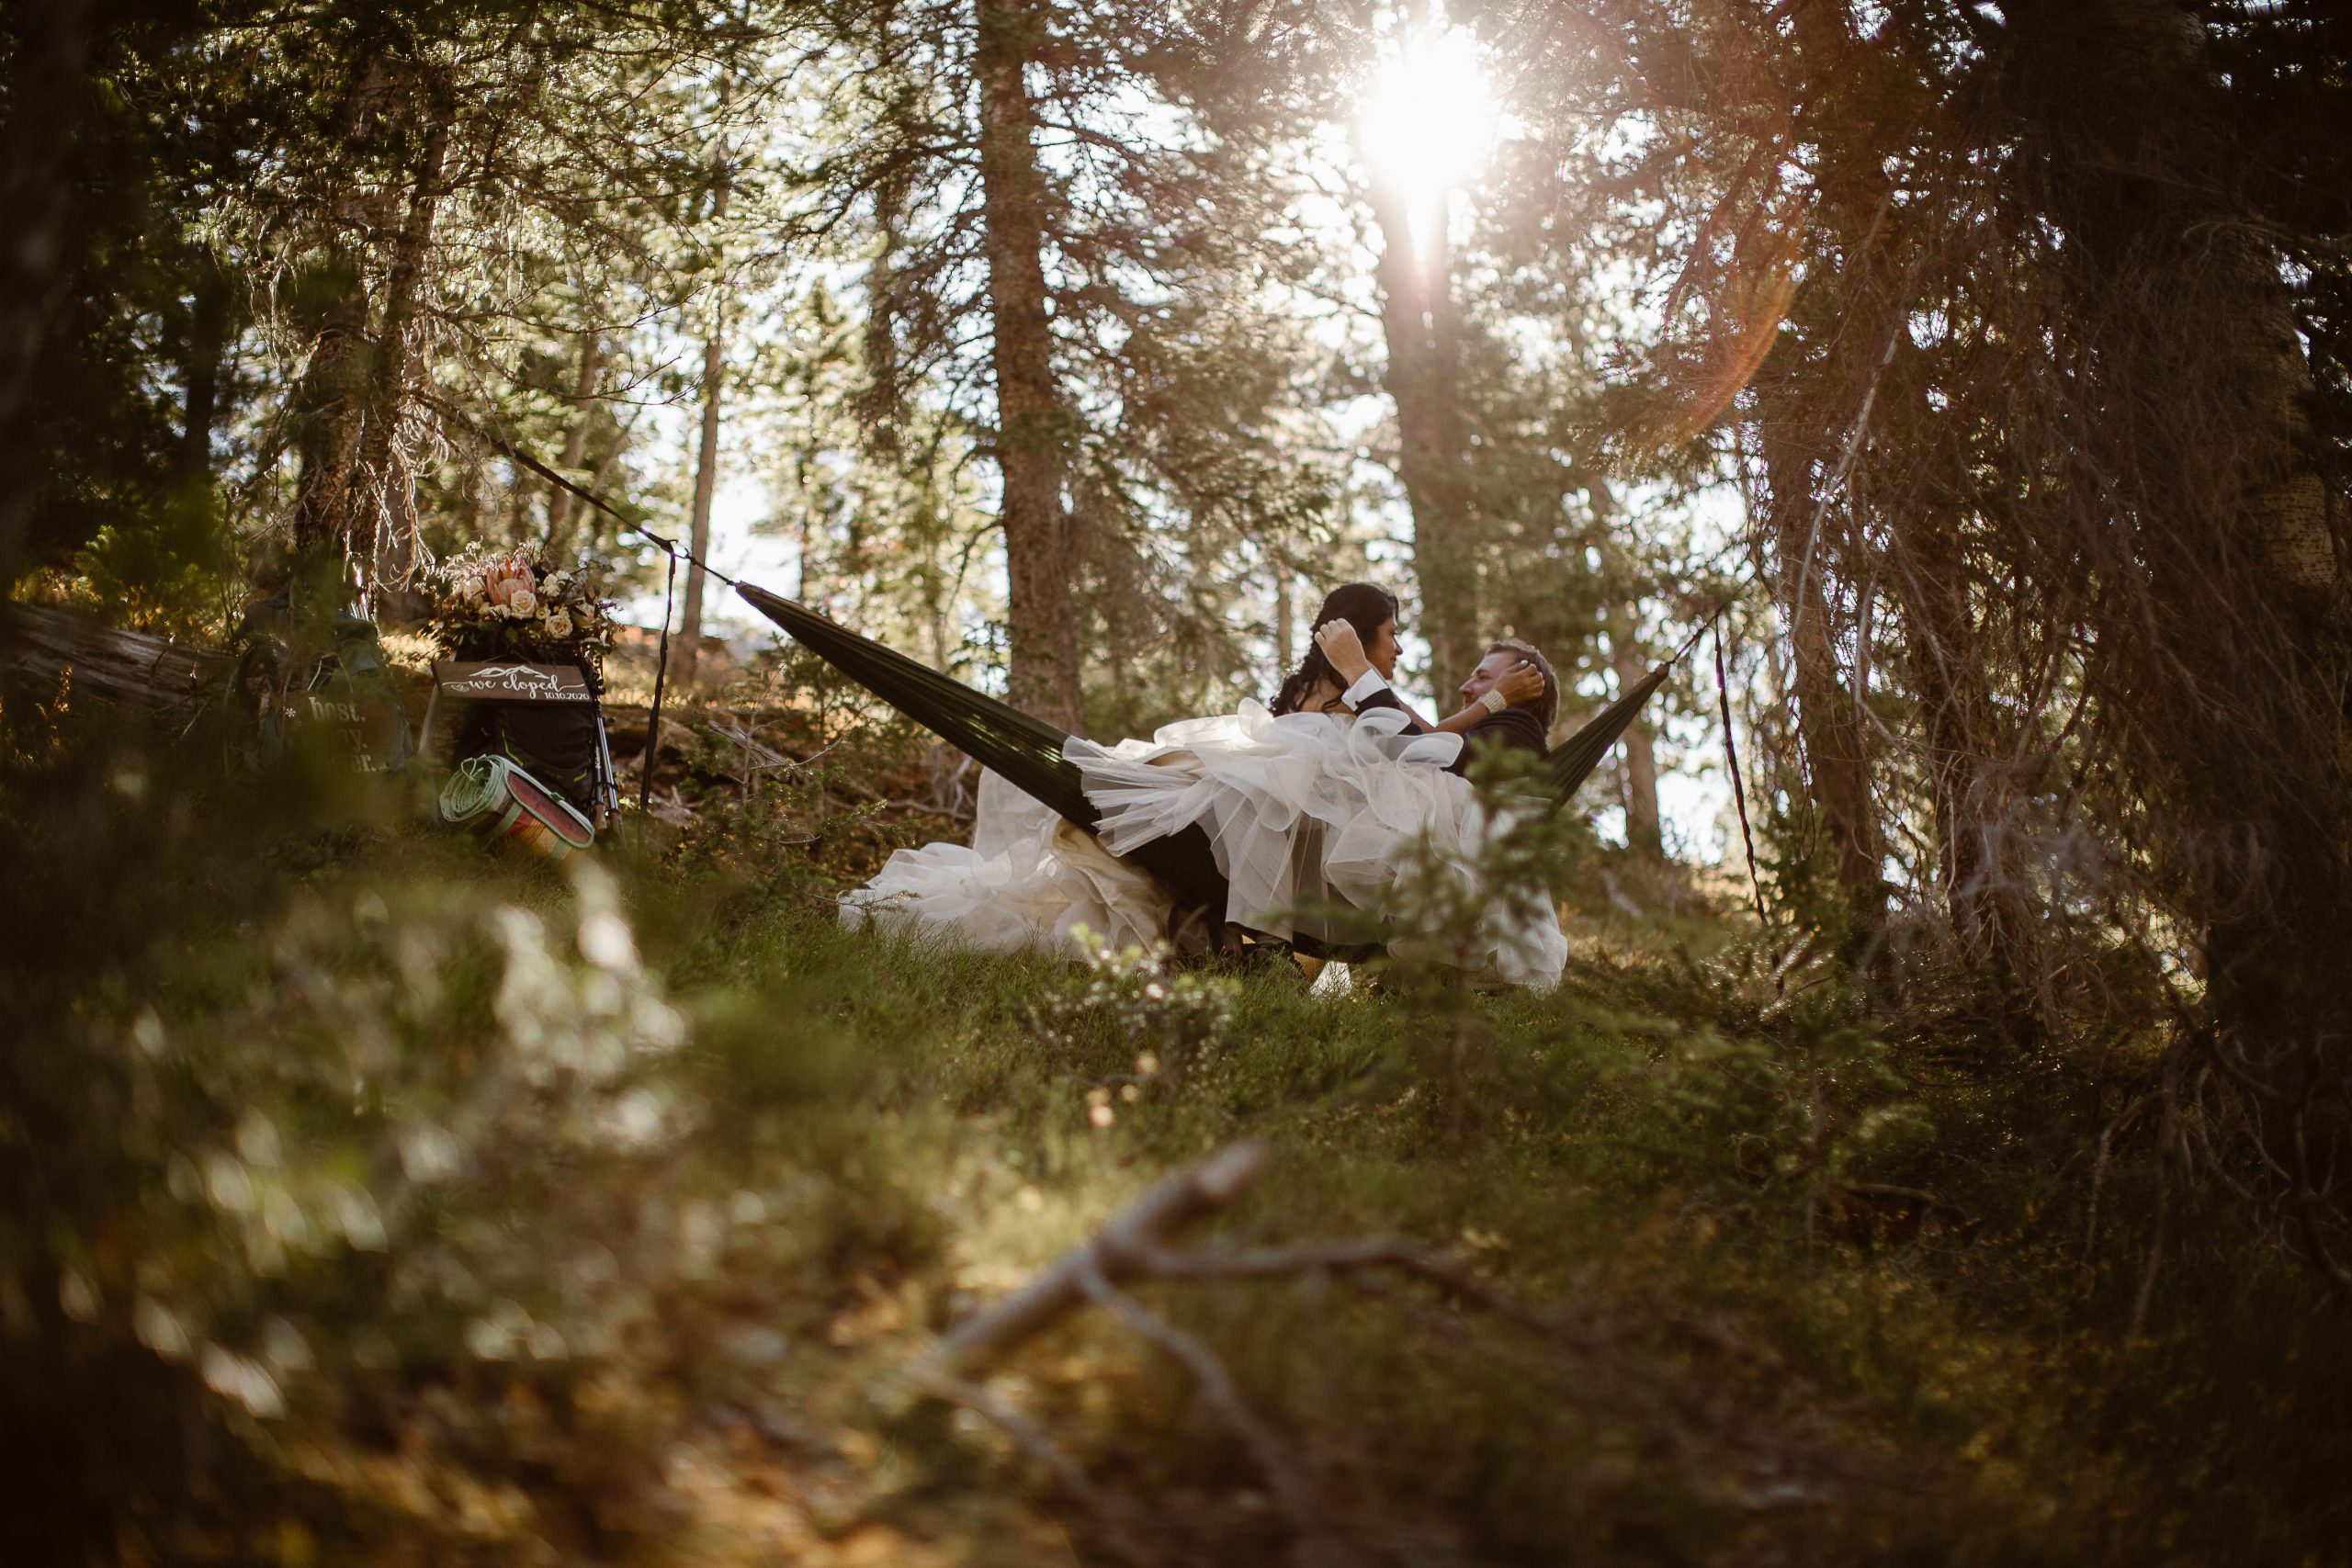 Ethereal Sunrise Rocky Mountains Adventure Elopement in Estes Park Sunrise Hammock Cuddles The Best Way To Say I LOVE YOU Before I Do